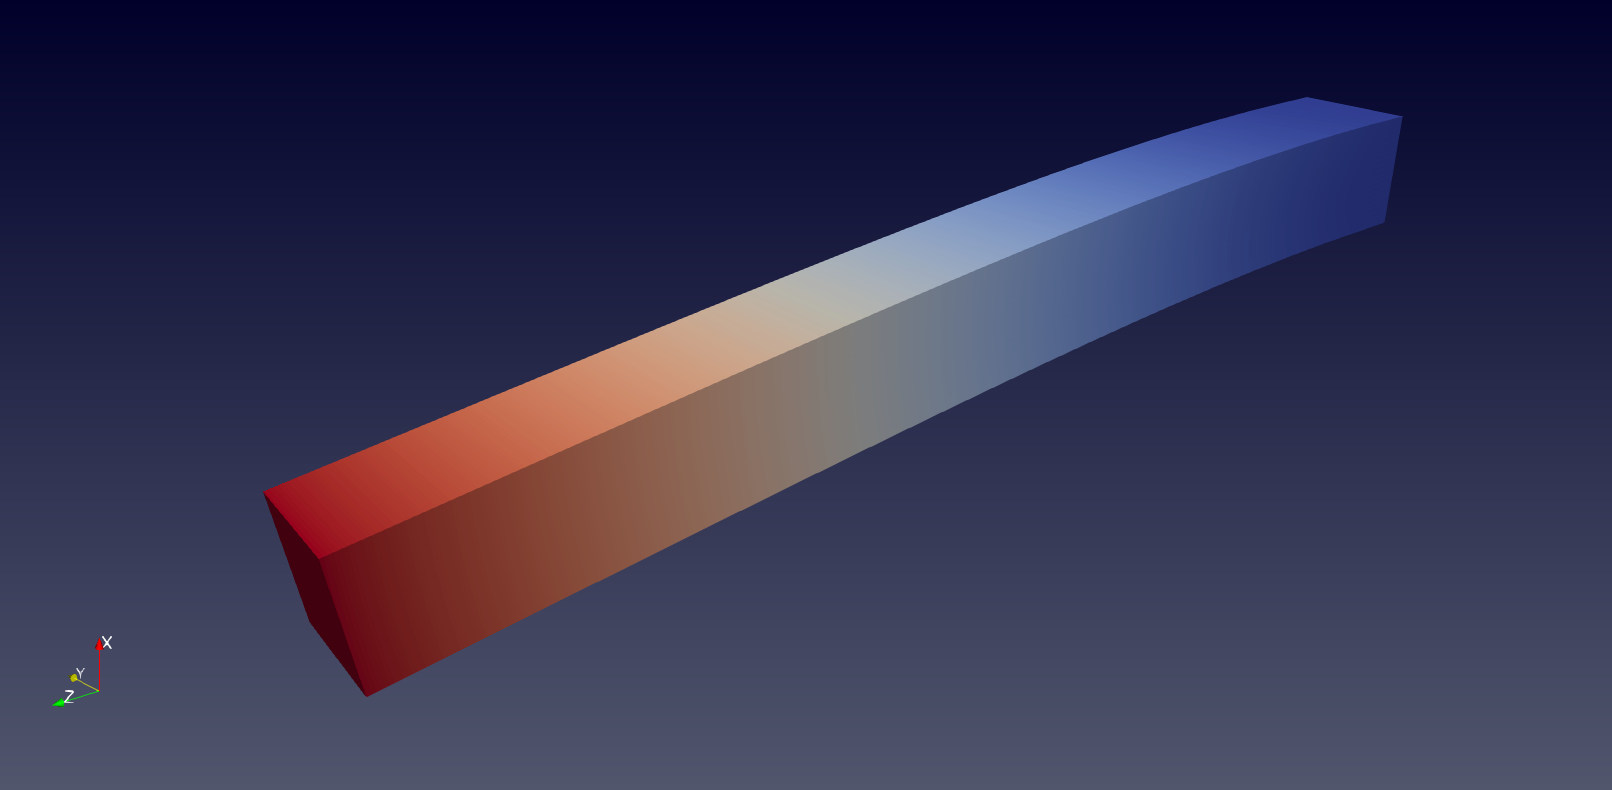 image from Elastic Modes of a Metal Bar